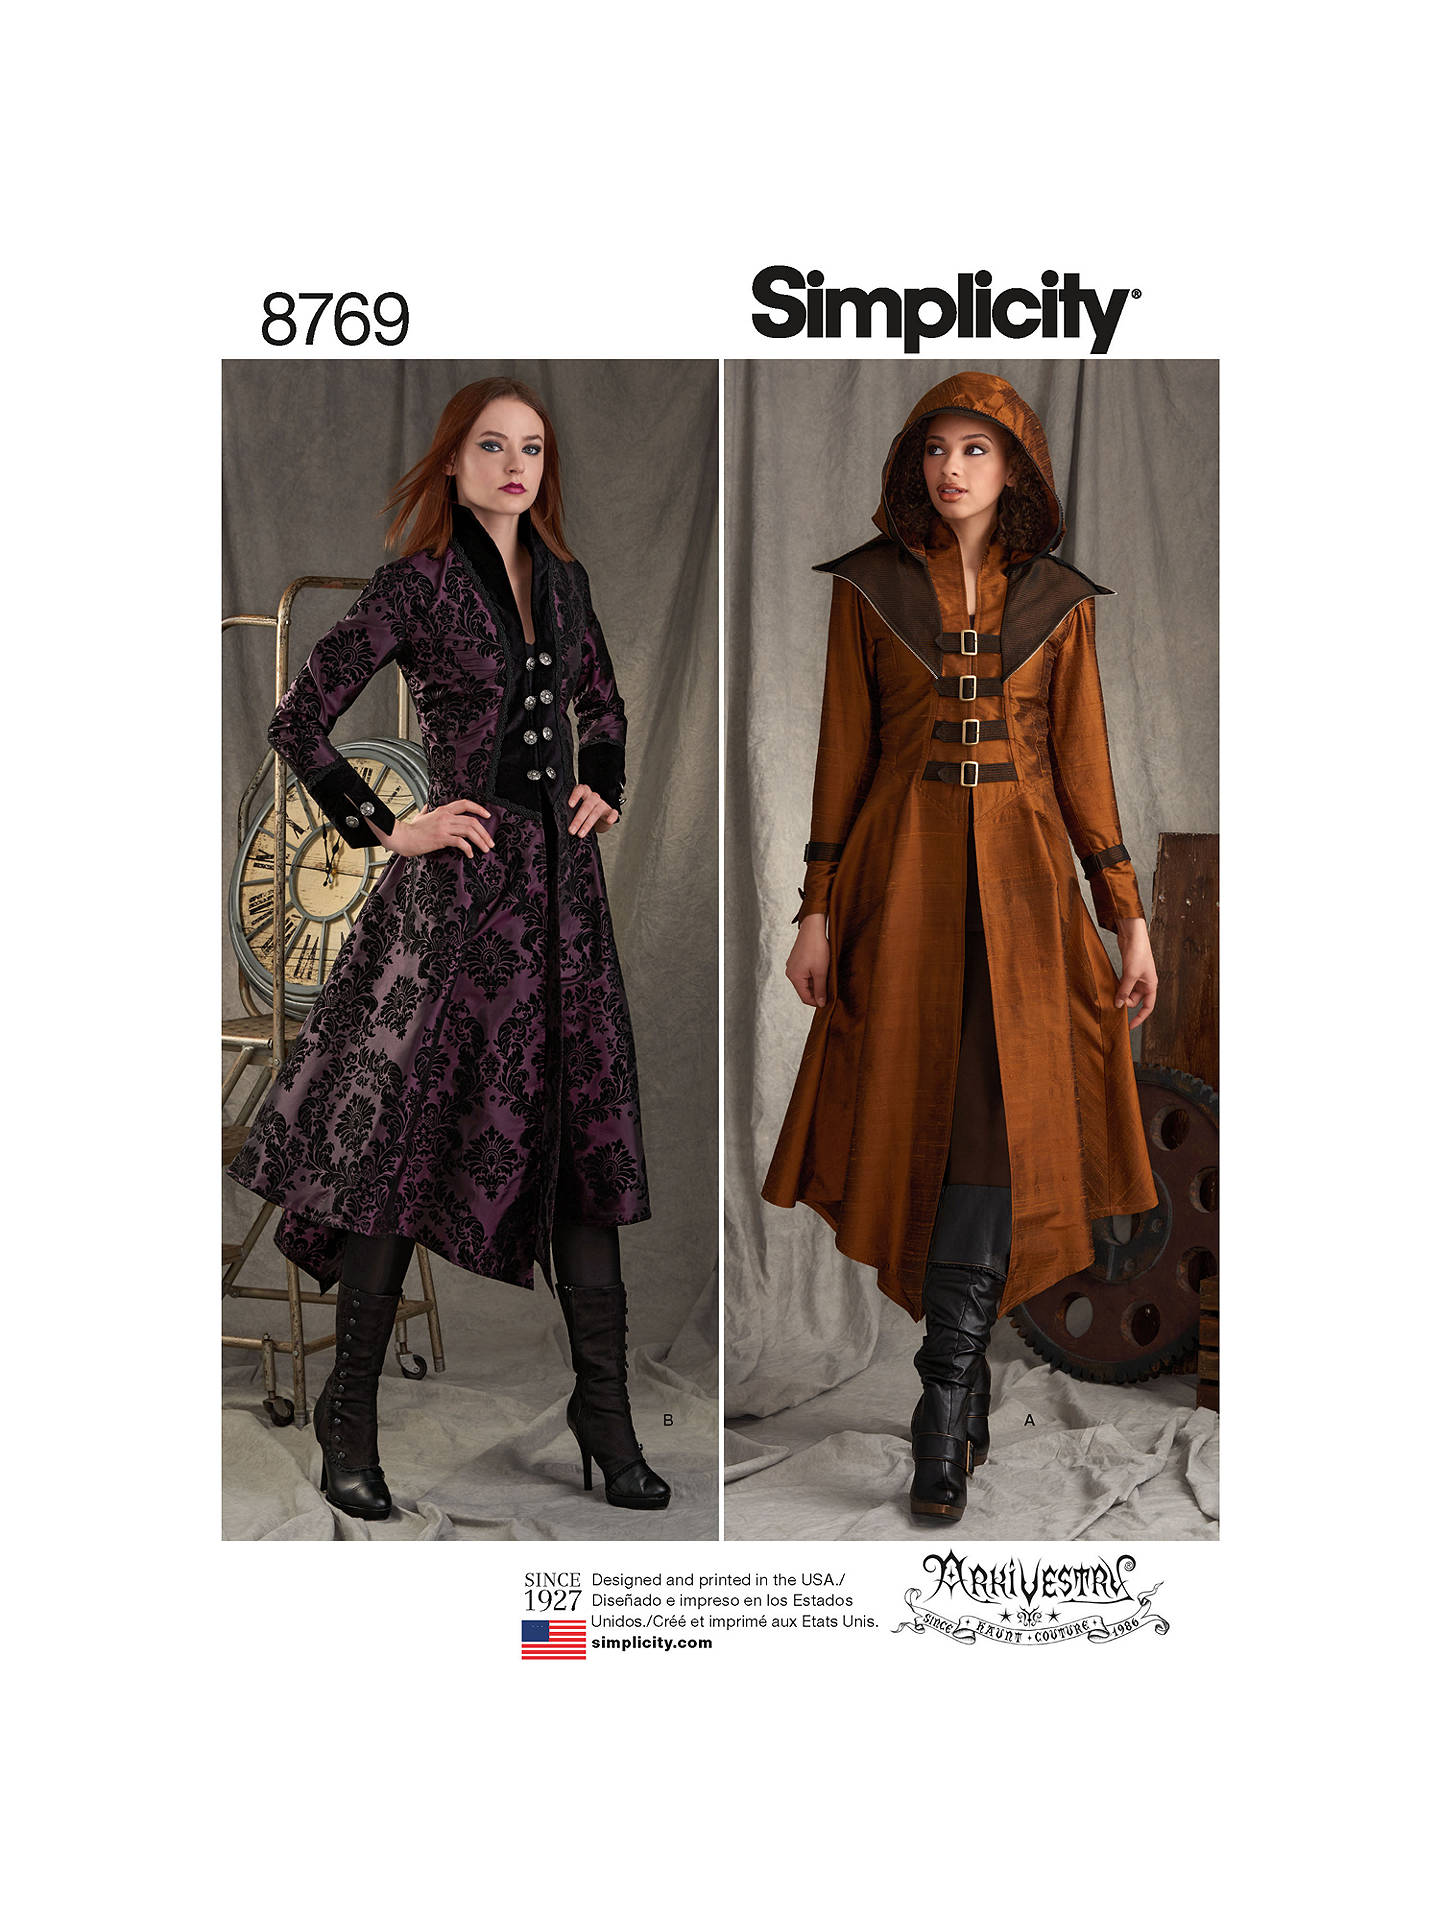 dd52e773a Simplicity Misses Military Costume Coats Sewing Patterns, 8769, R5